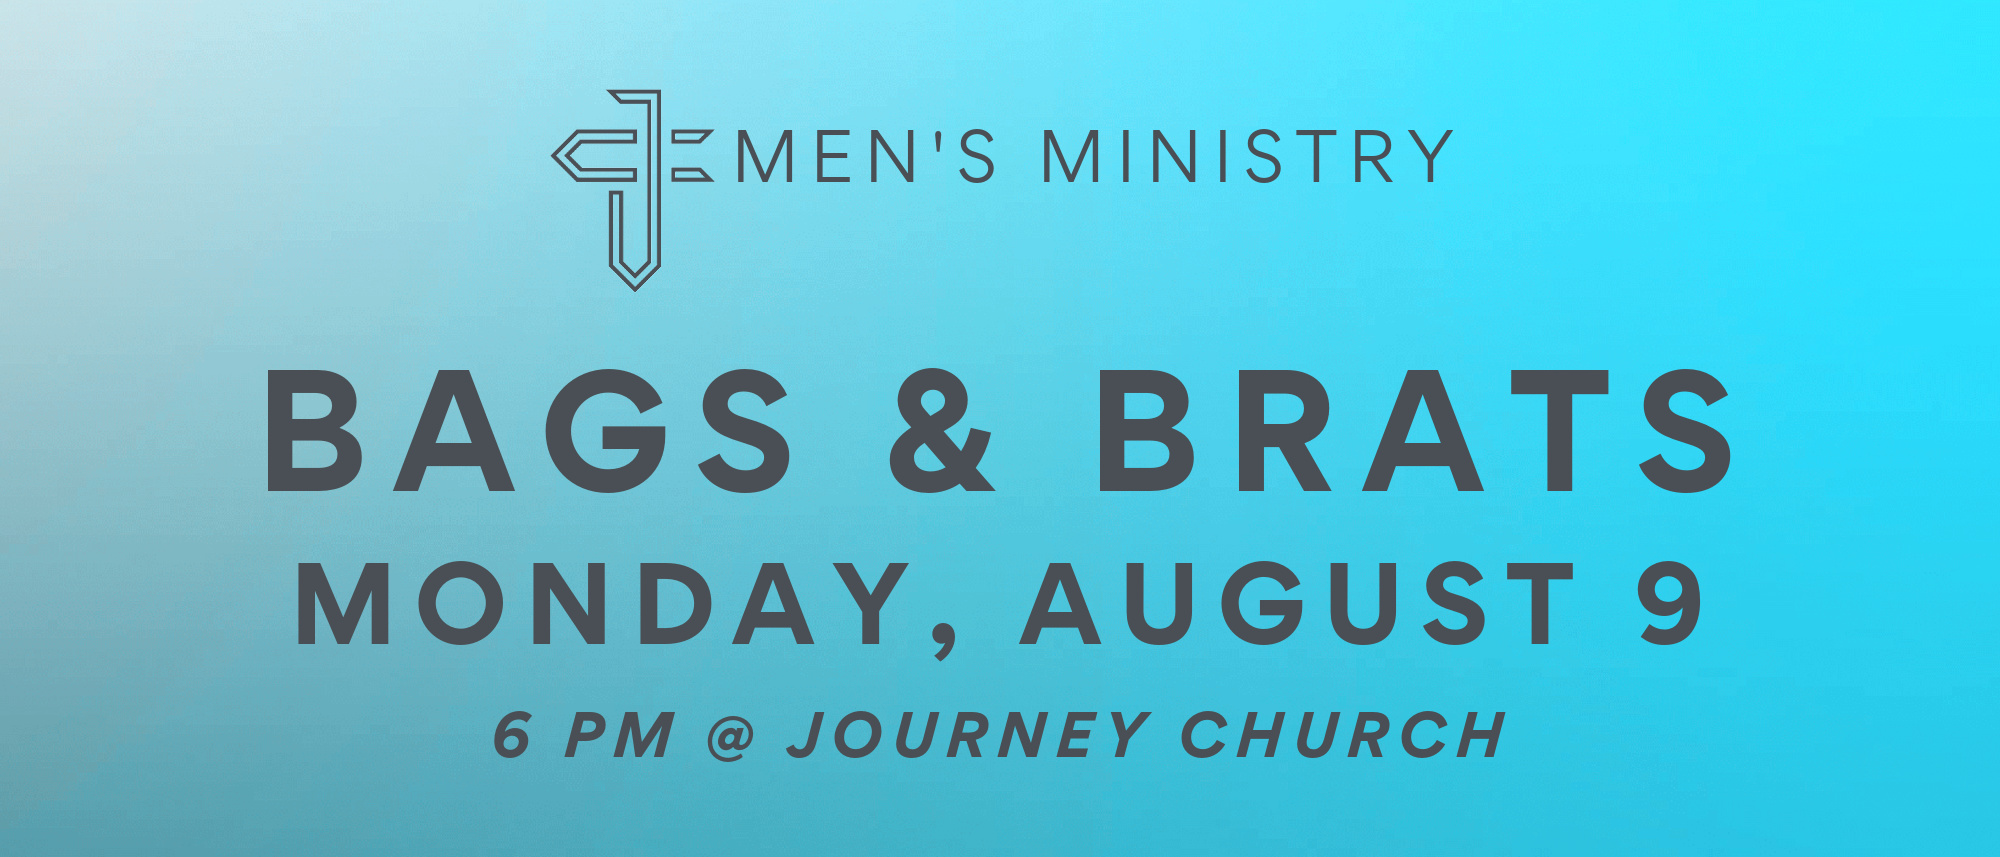 Journey men! Join us on August 9th for some bags and brats!